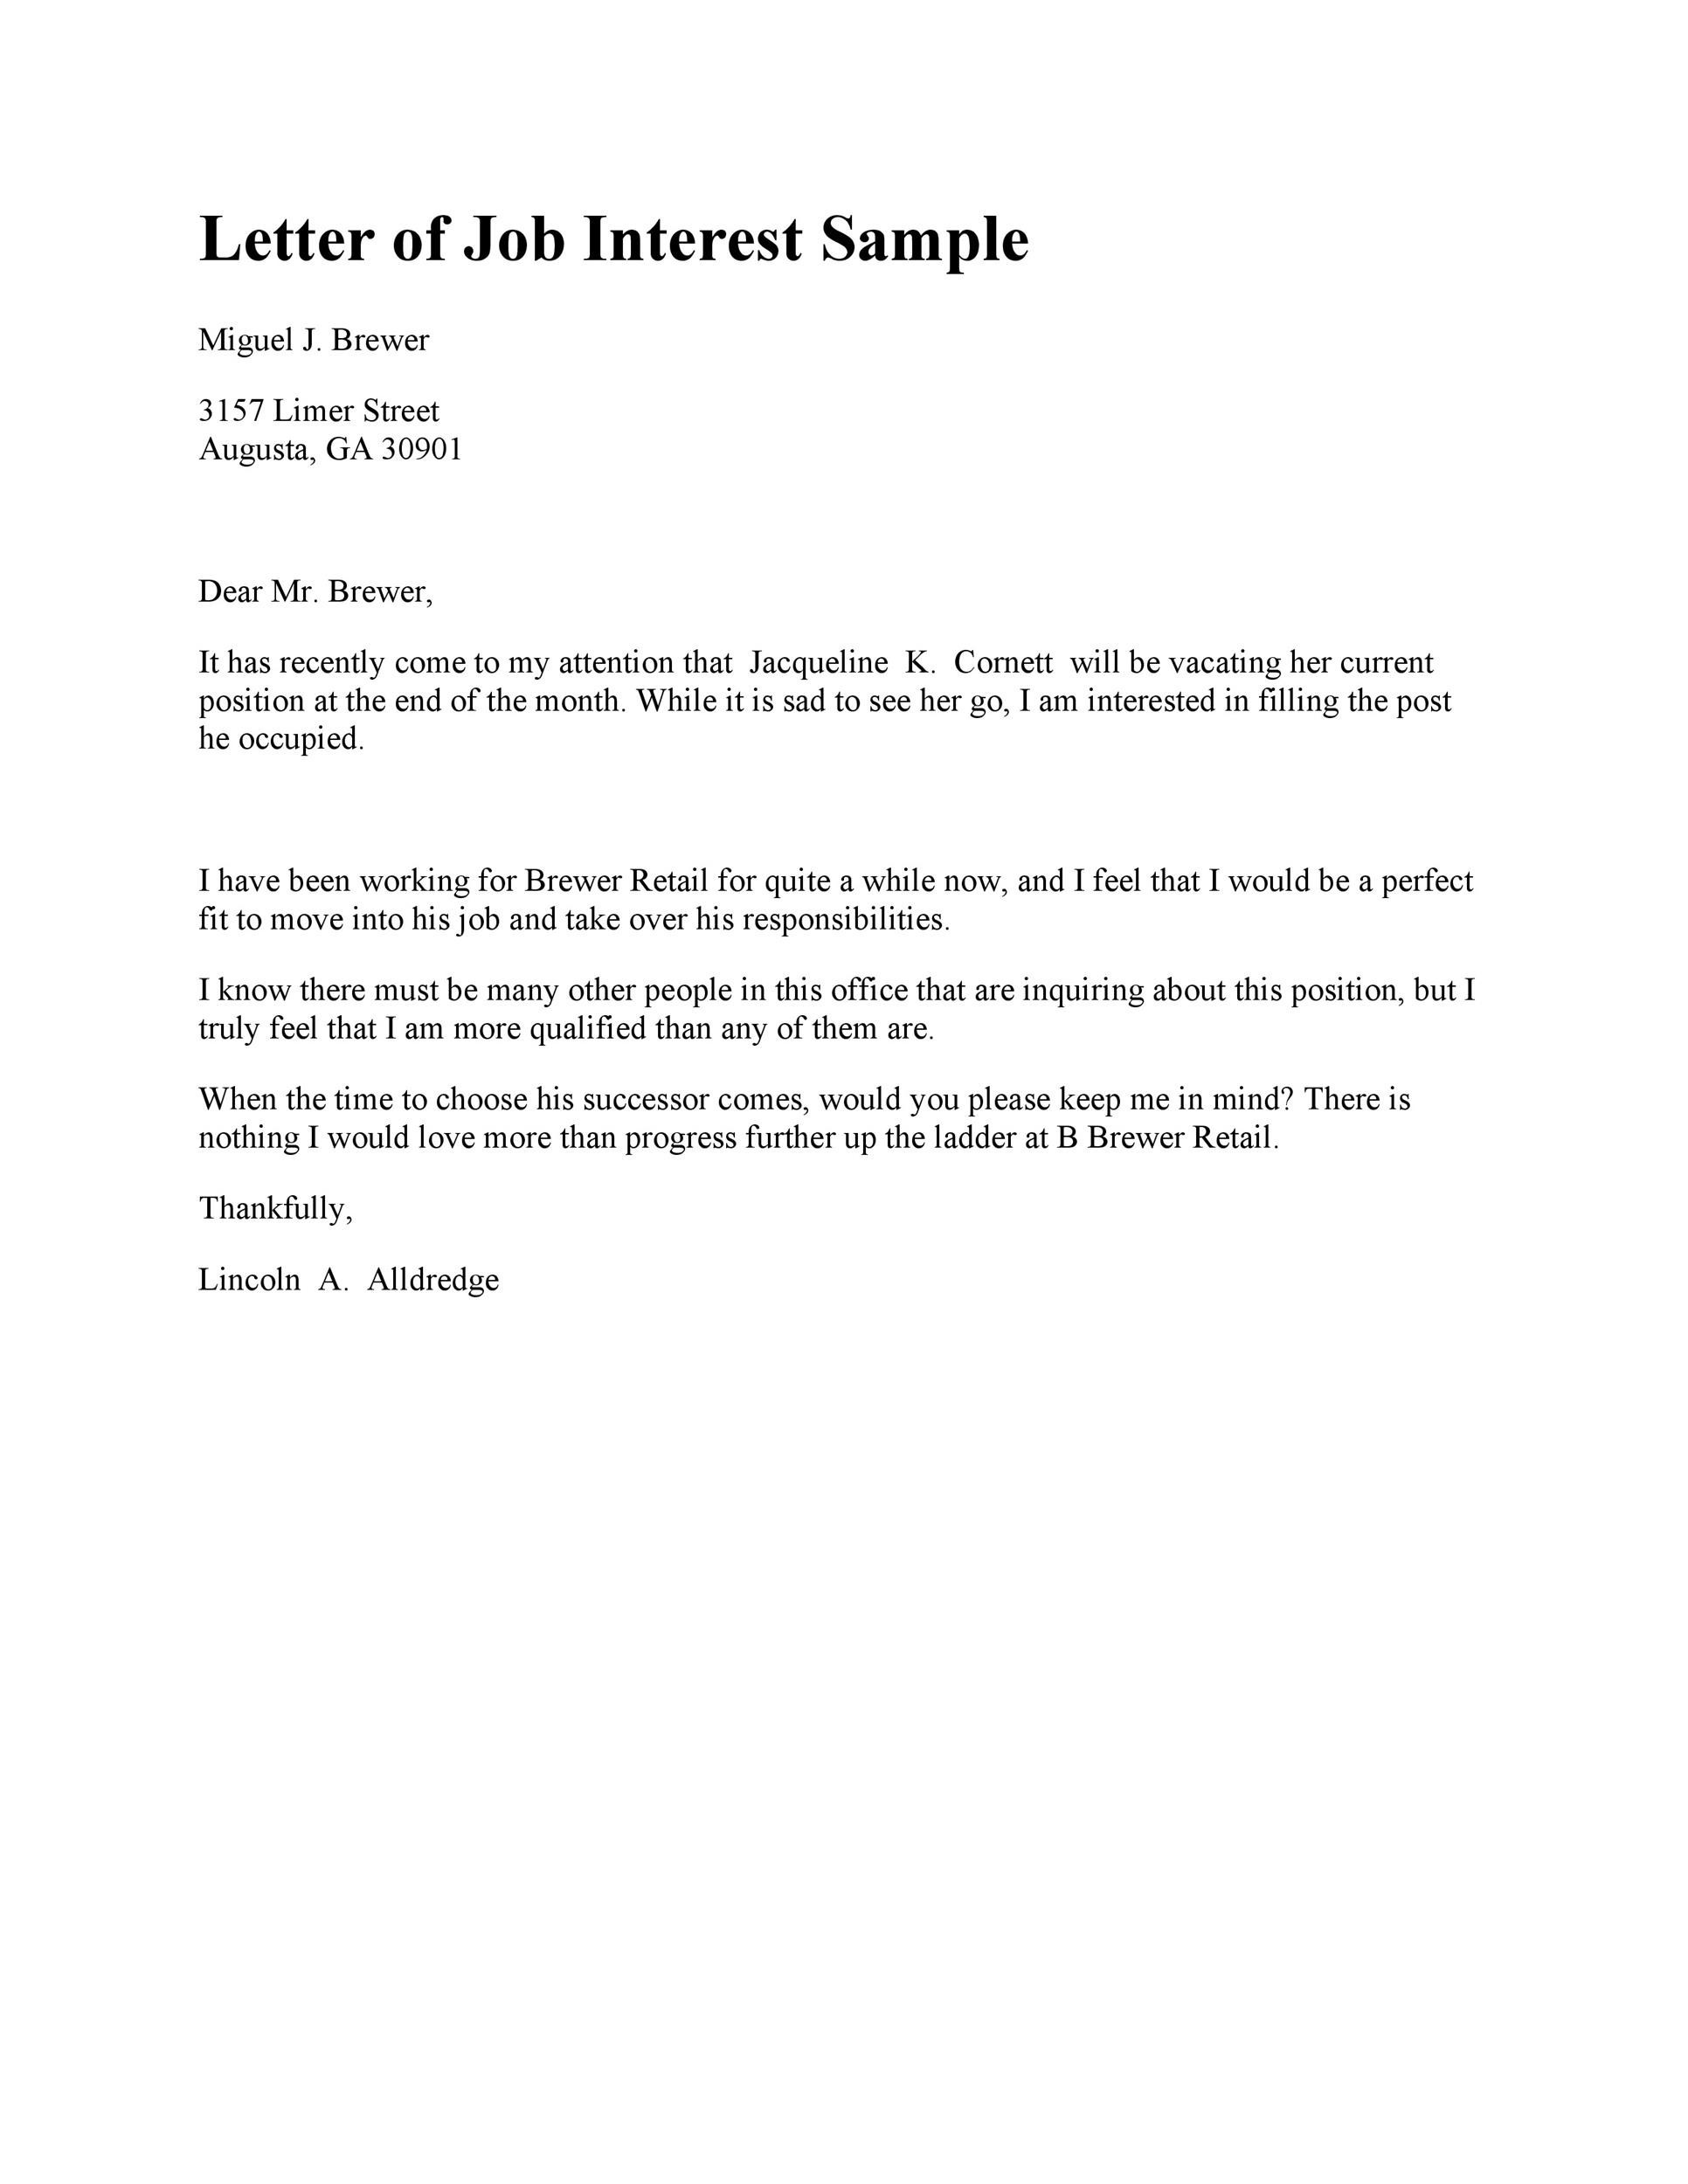 30 amazing letter of interest samples templates letter of interest 24